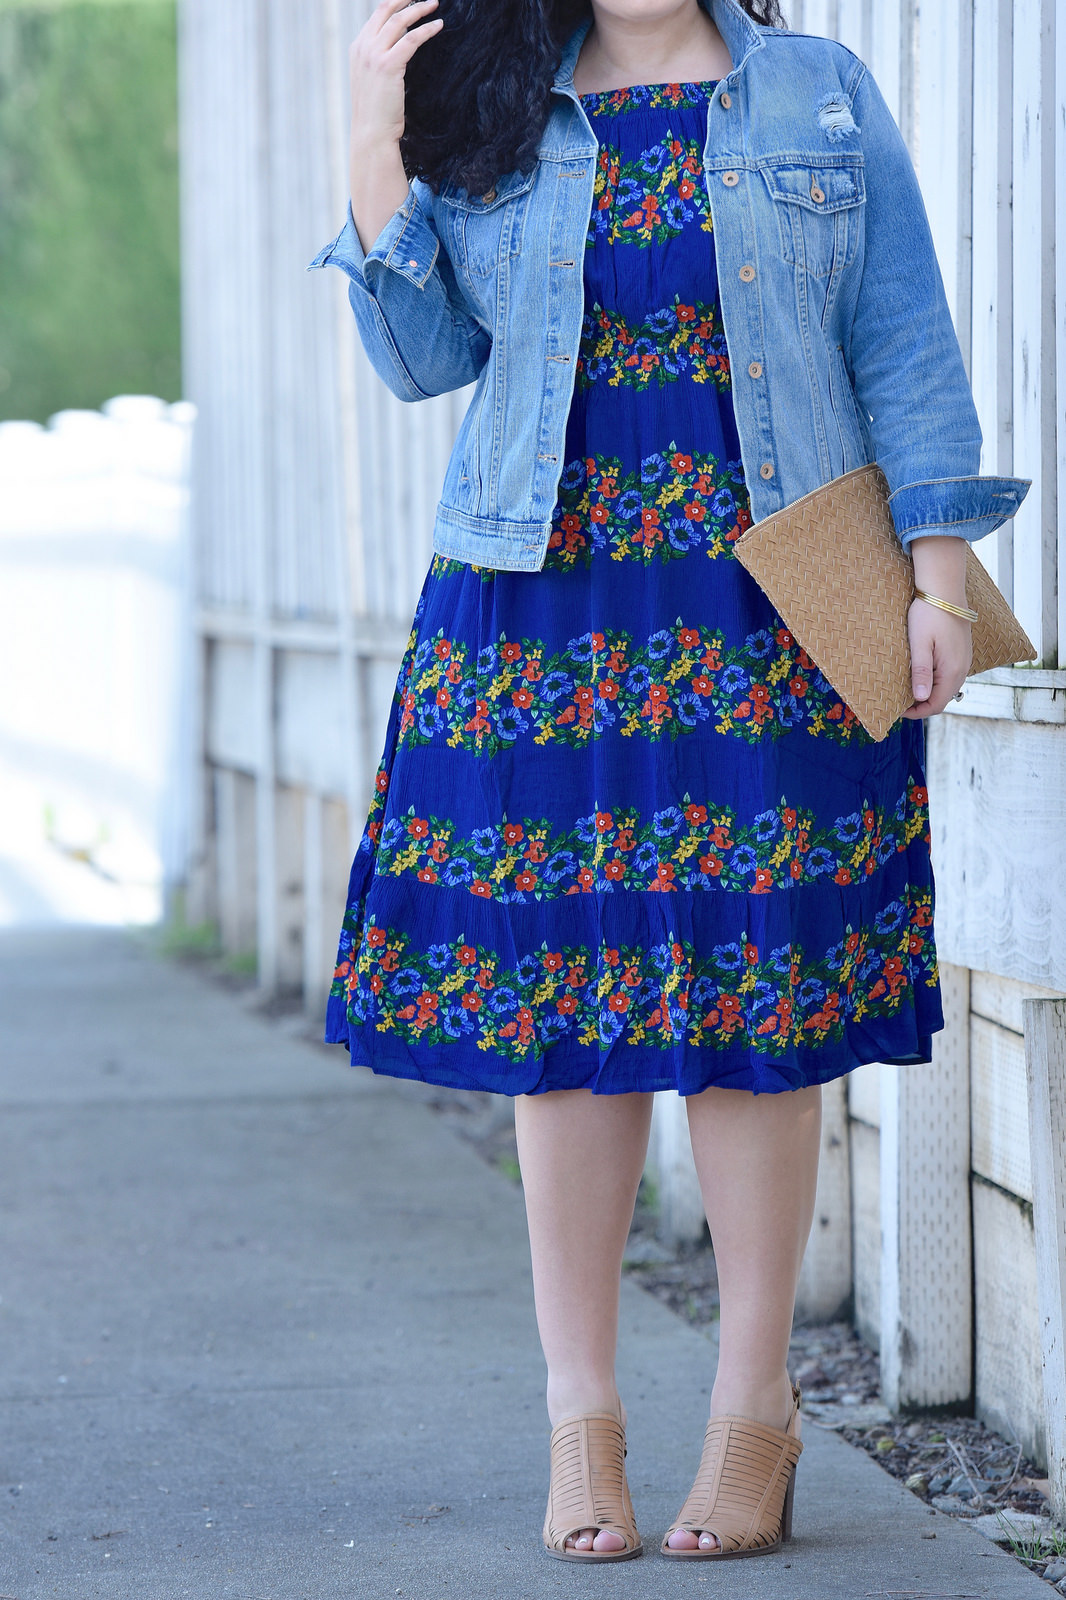 Florals Dress from Old Navy via @GirlwithCurves